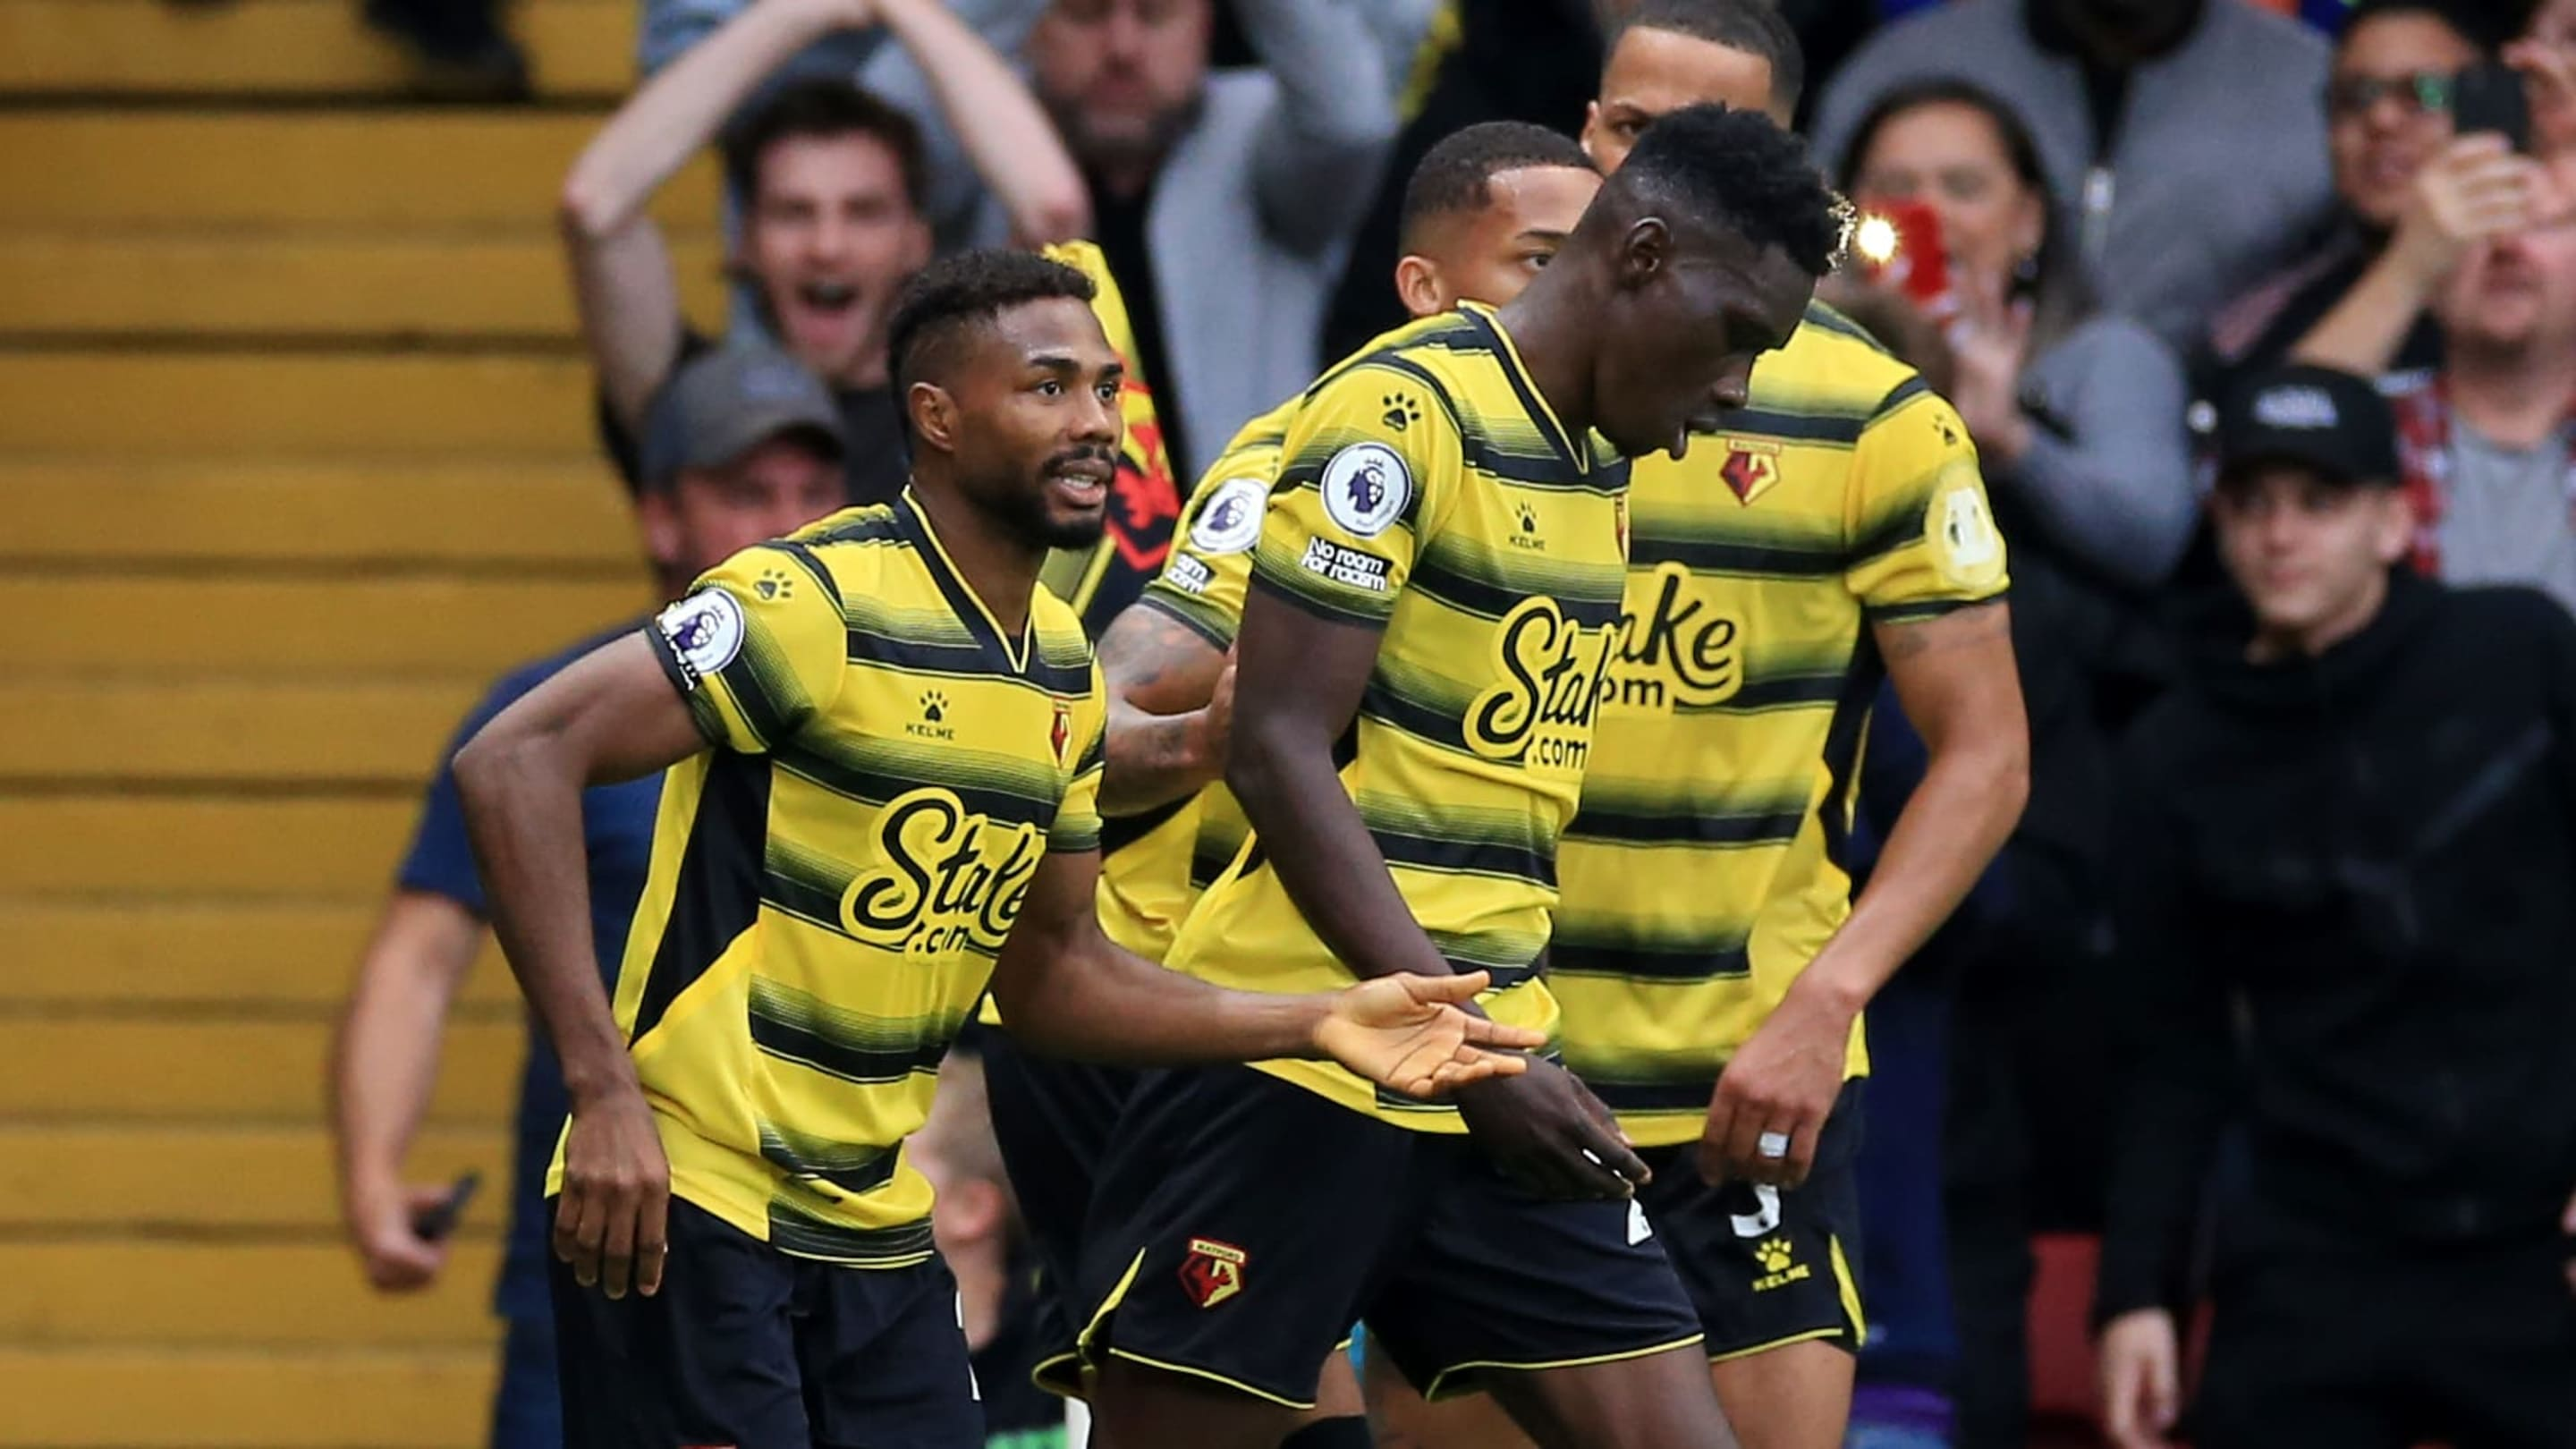 Watford 1-1 Newcastle: Player ratings as Ismaila Sarr rescues Hornets a point